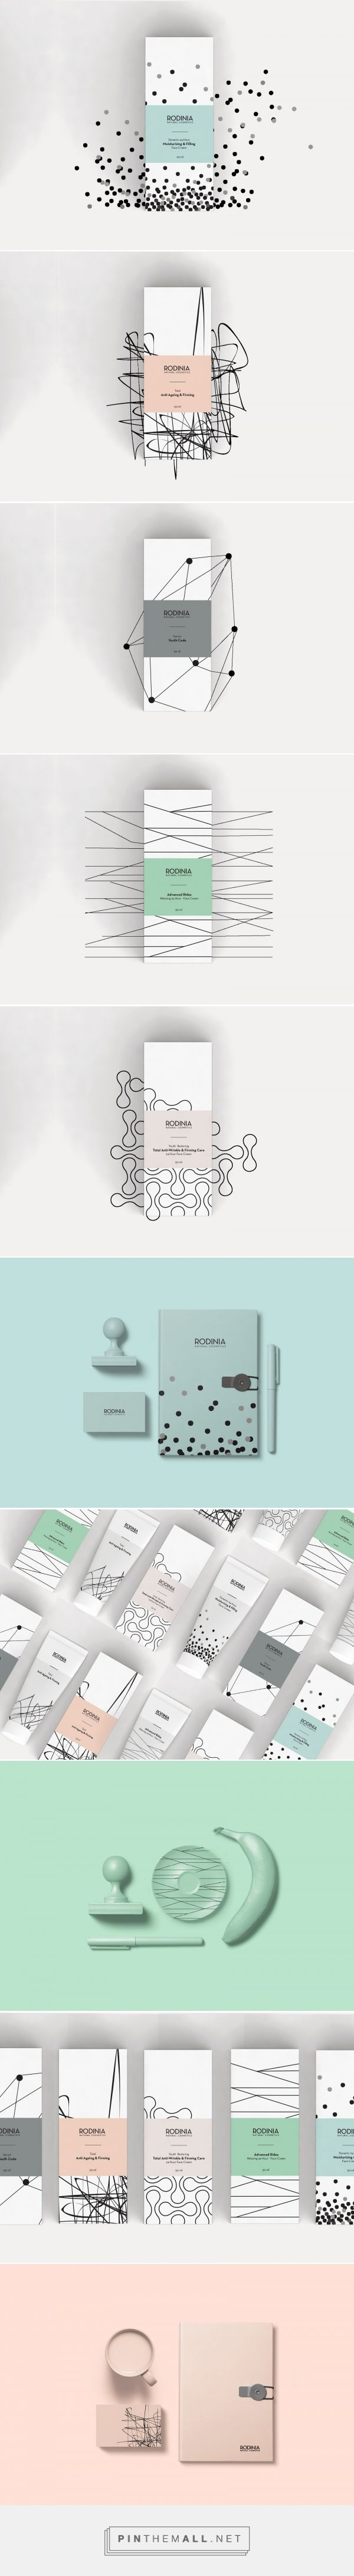 Rodinia - Skincare Line - Packaging of the World - Creative Package Design Gallery - http://www.packagingoftheworld.com/2017/11/rodinia-skincare-line.html